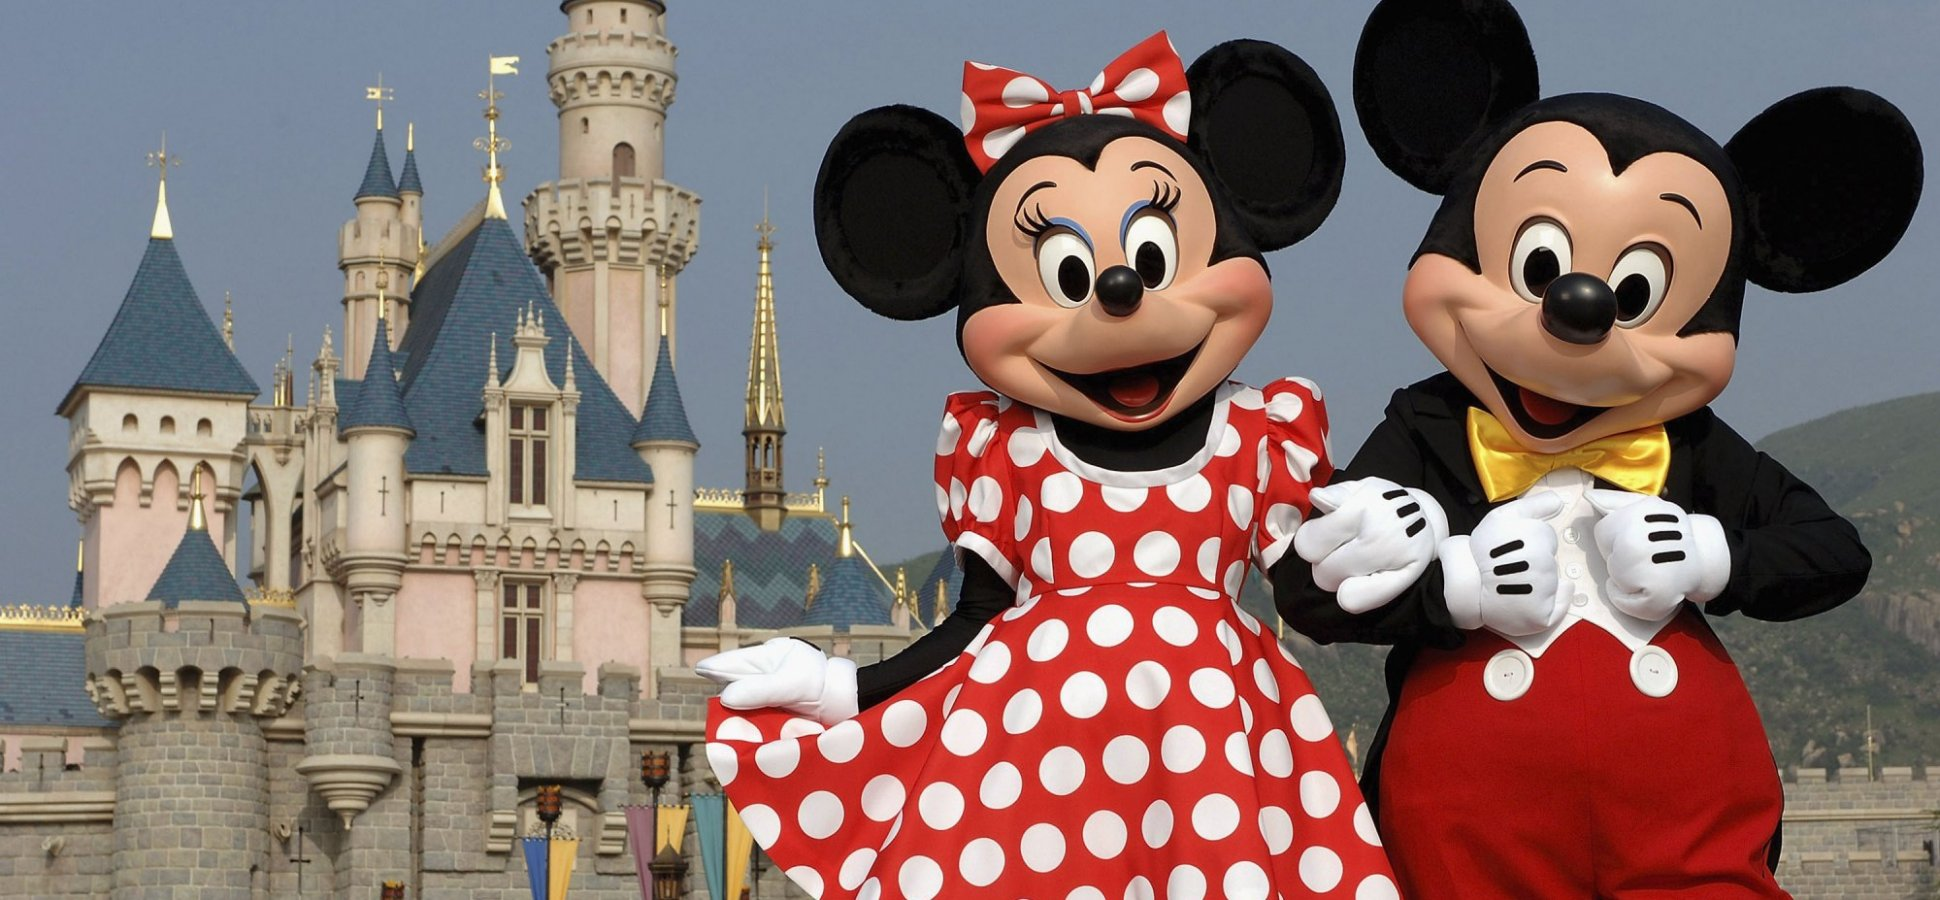 This Heir to the Disney Fortune Went 'Undercover' to See How Workers Are Treated at Disneyland. (Her Report: 'I Was So Livid')